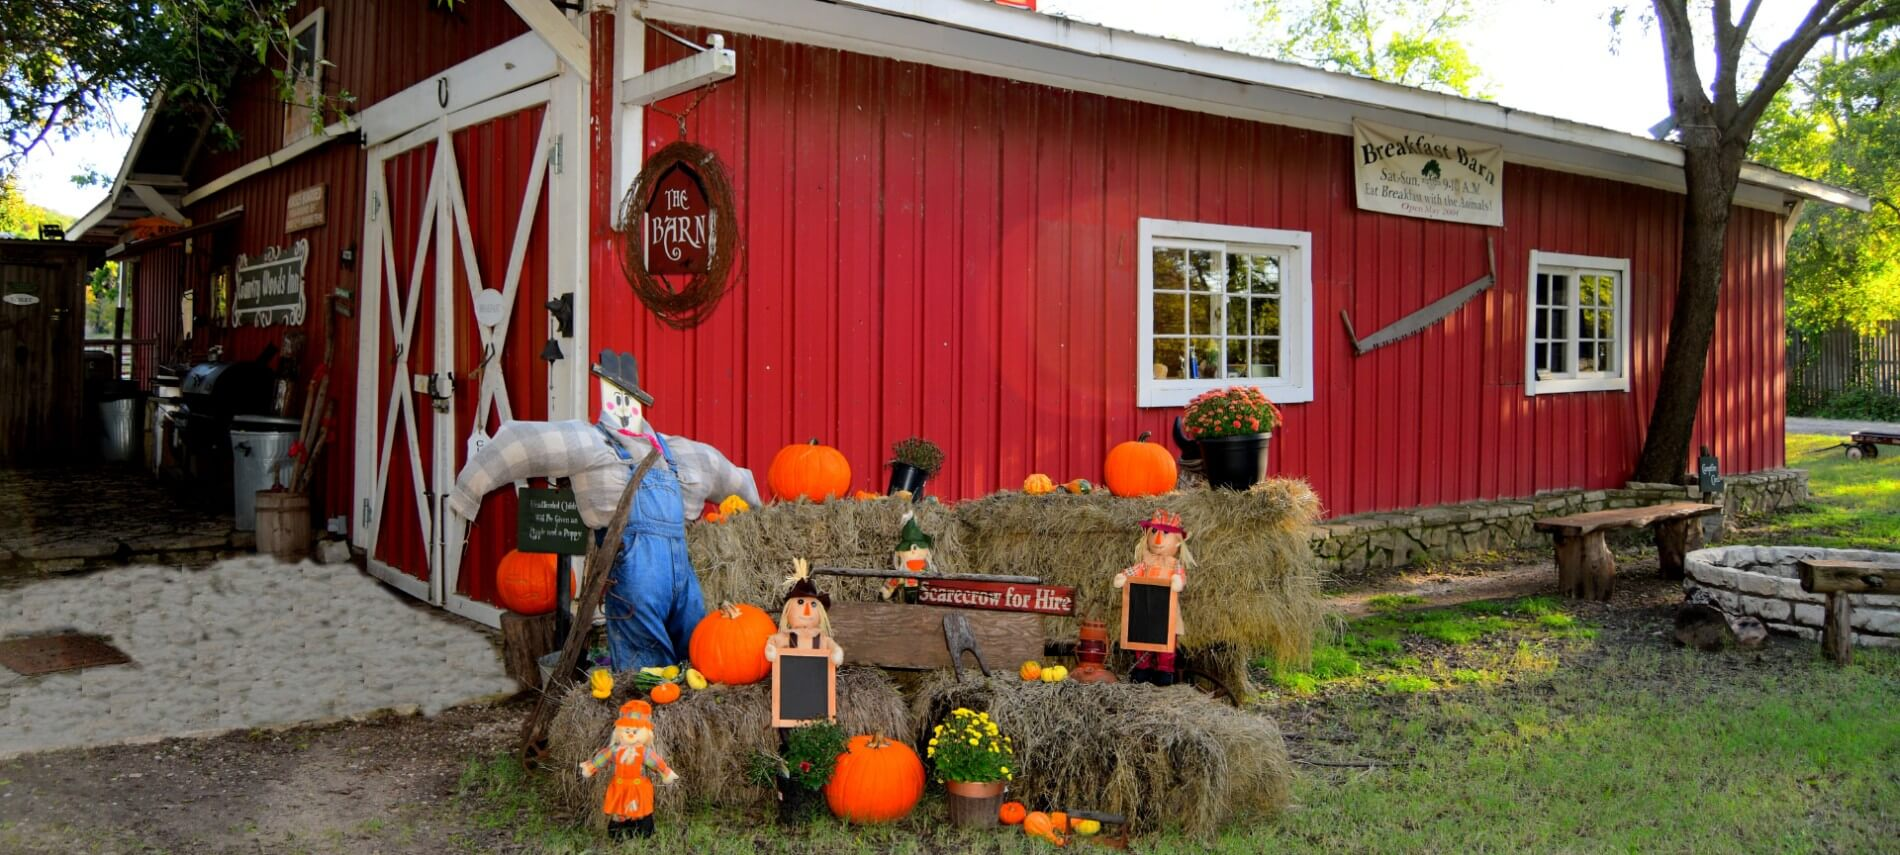 Red barn decorated for fall with scarecrow and pumpkins on hay bales.